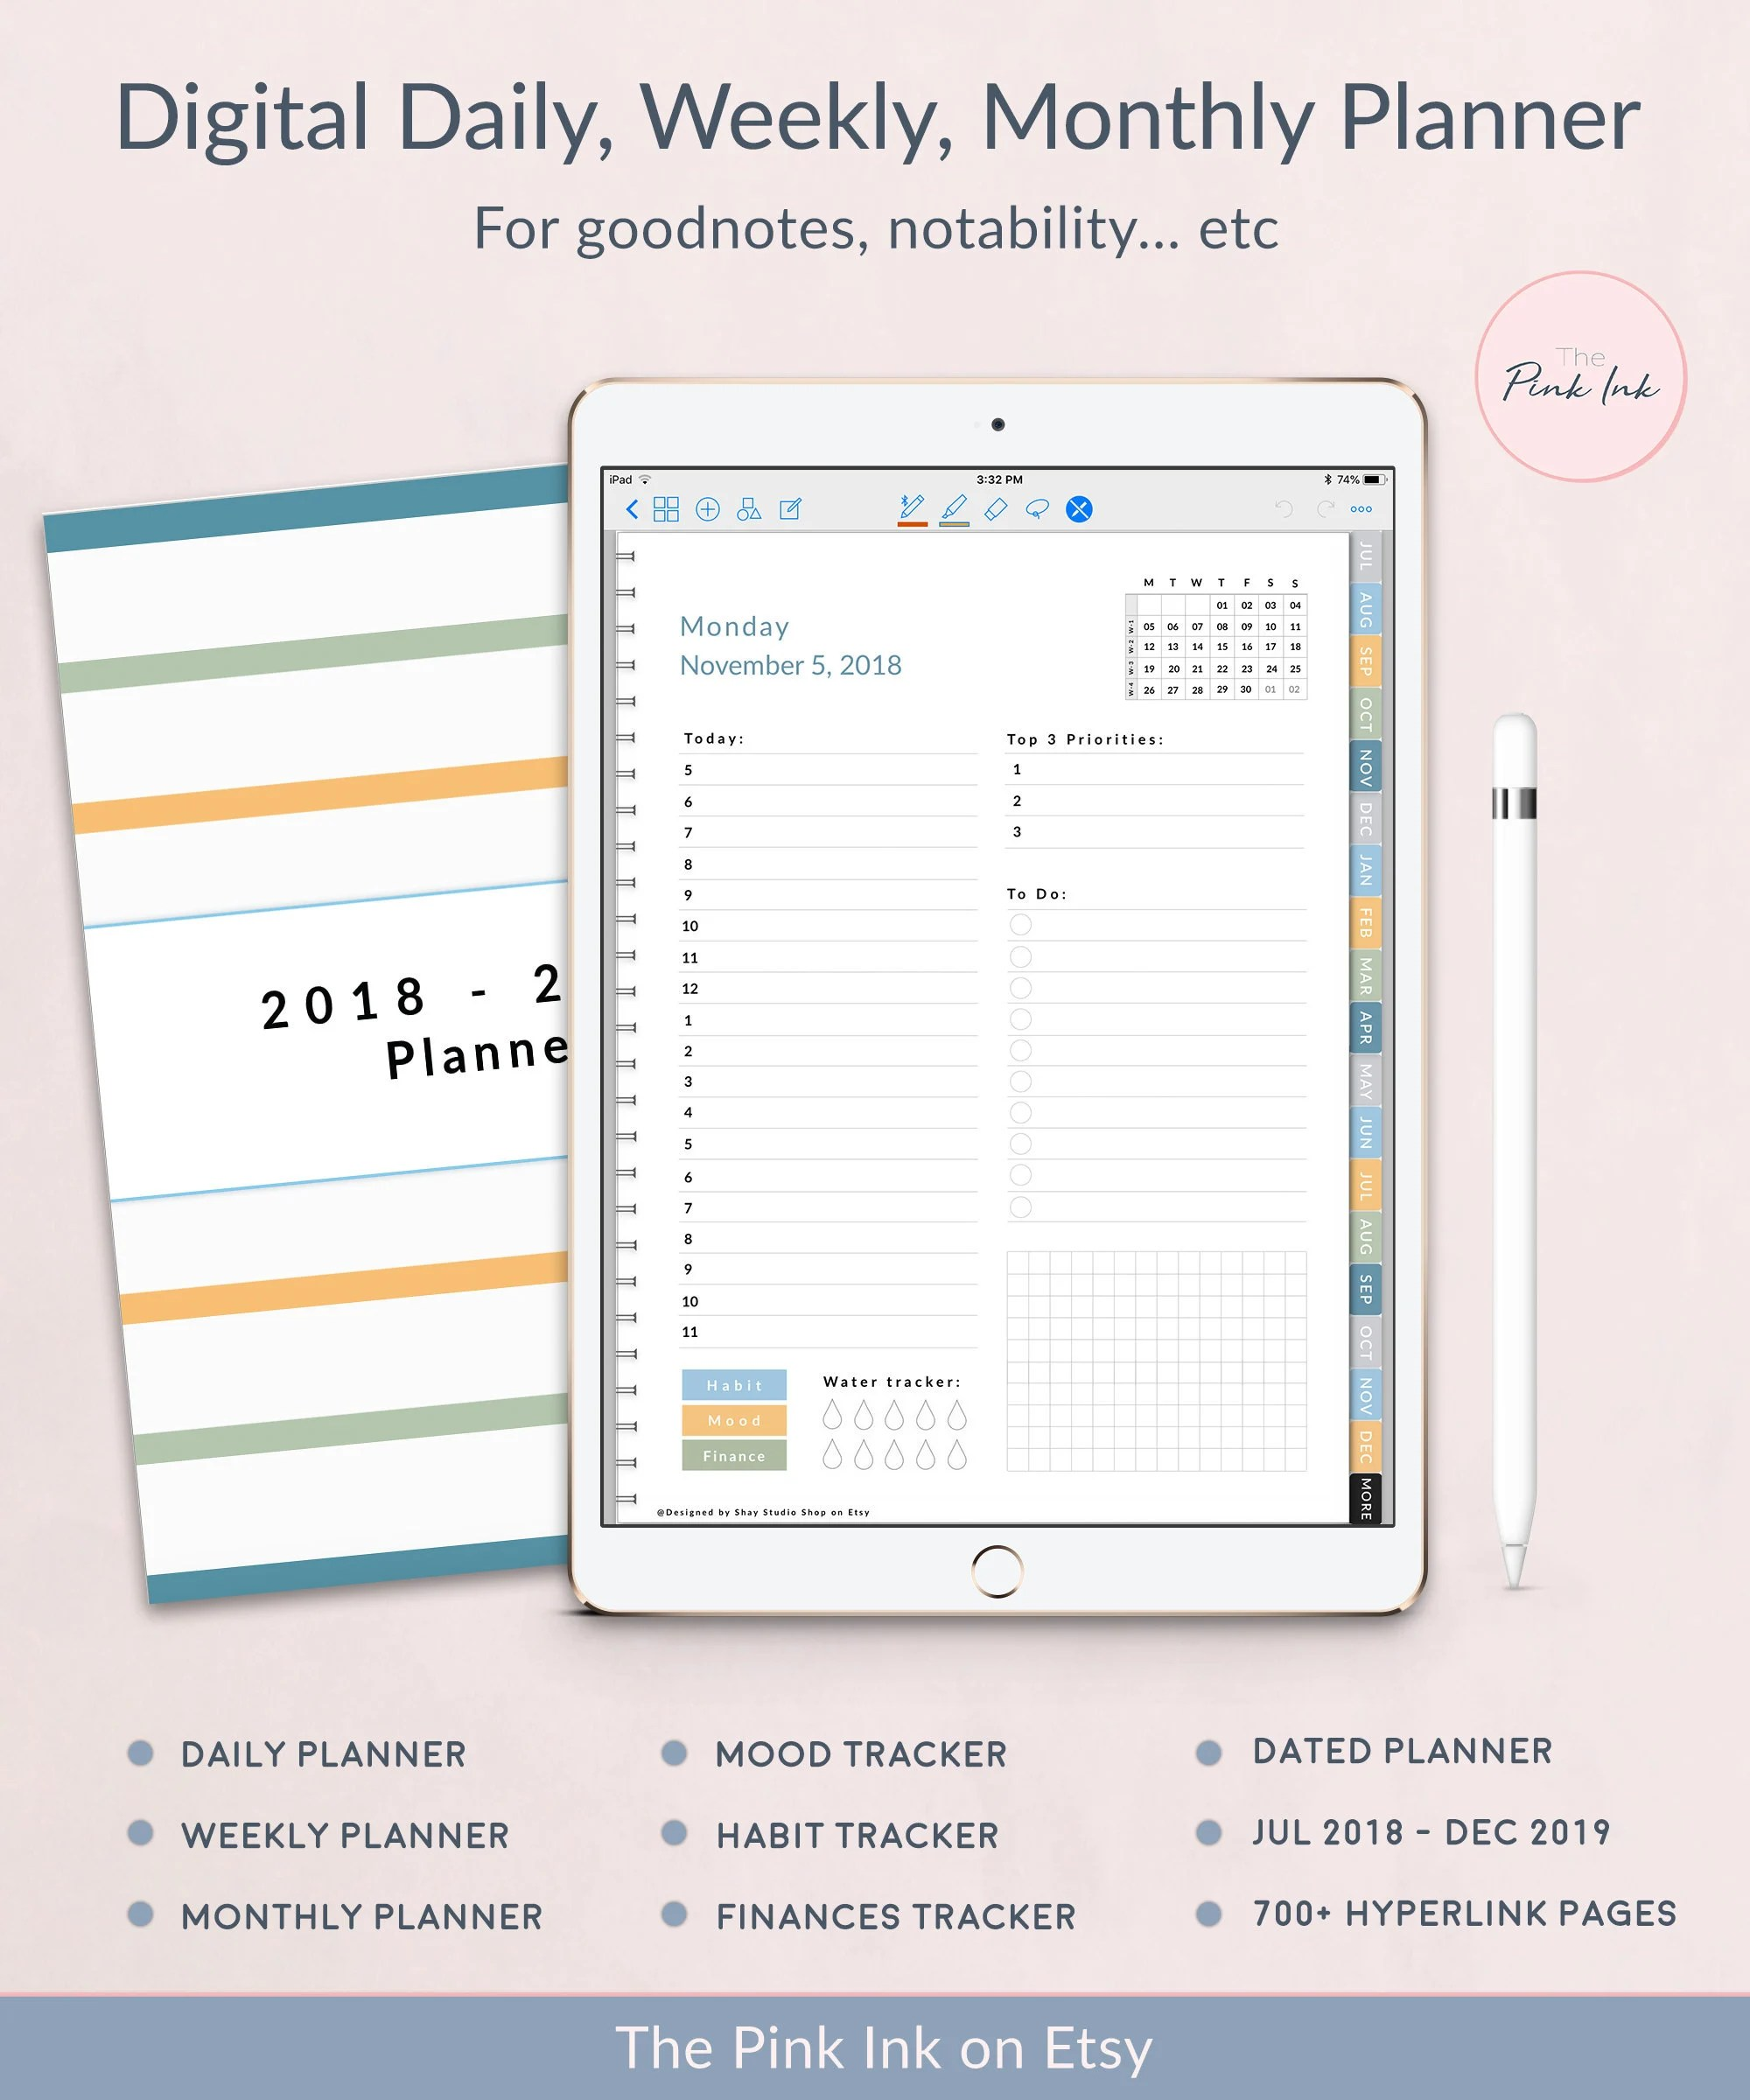 2018 2019 Dated Digital Daily planner Weekly Planner Etsy